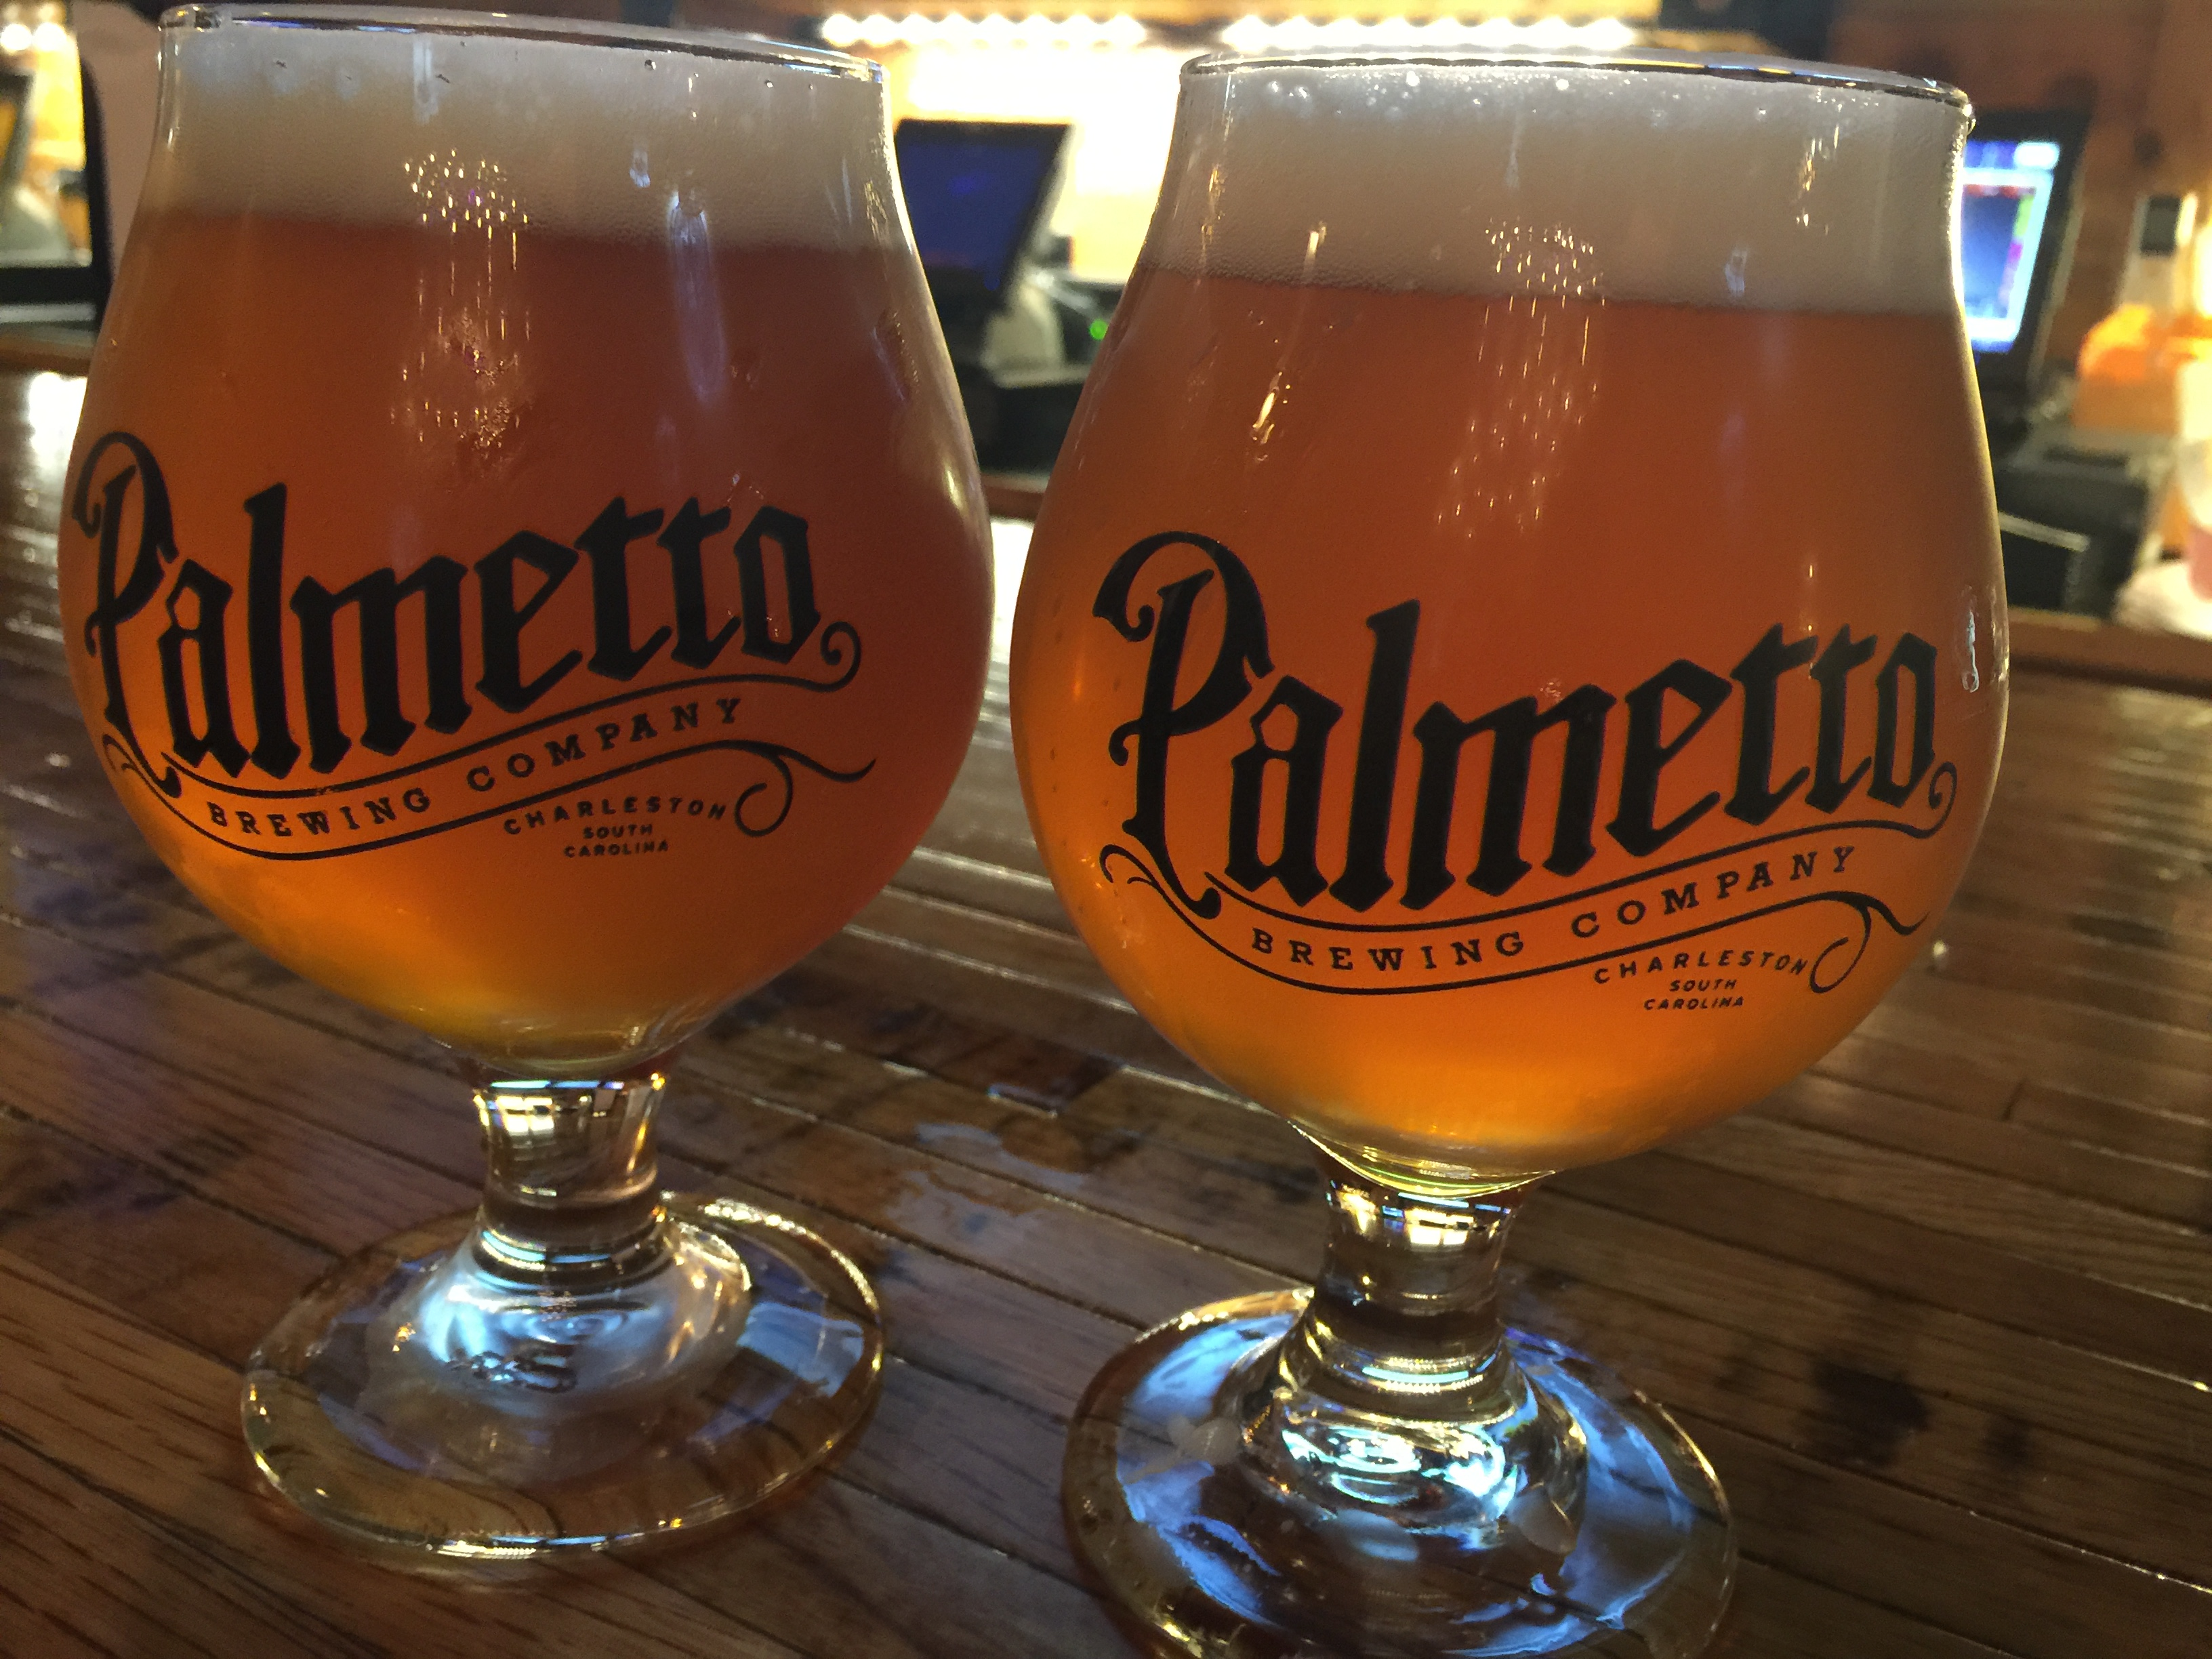 A fresh Palmetto pour at the brewery